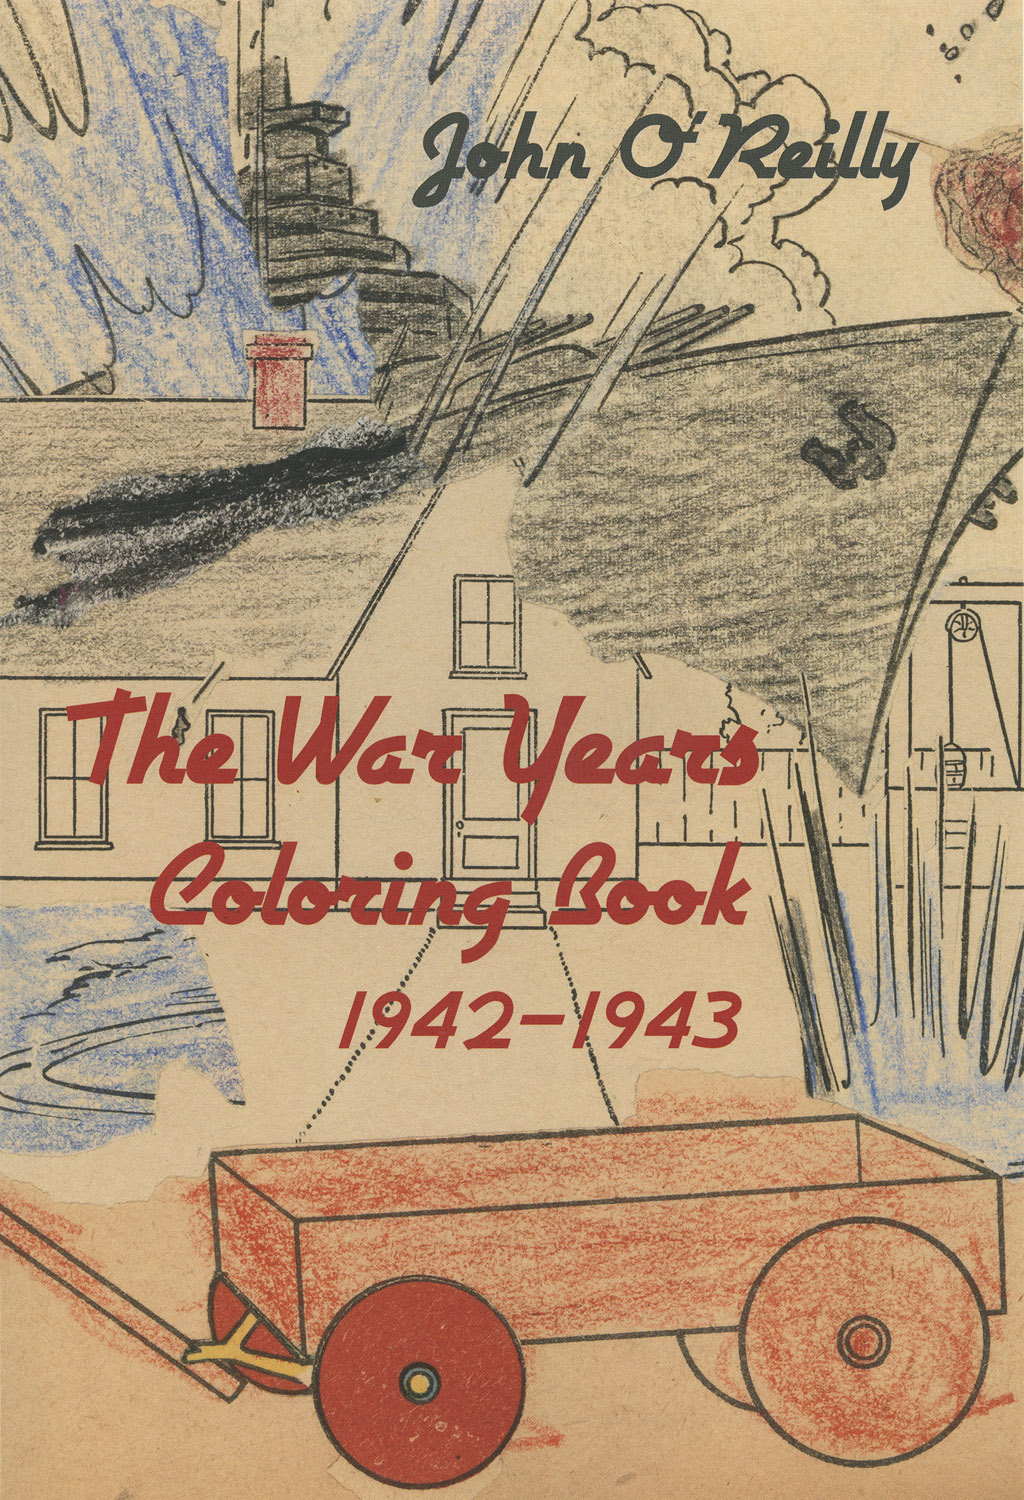 John O'Reilly,  The War Years Coloring Book, 1942-1943   Designed by Stephen Stinehour